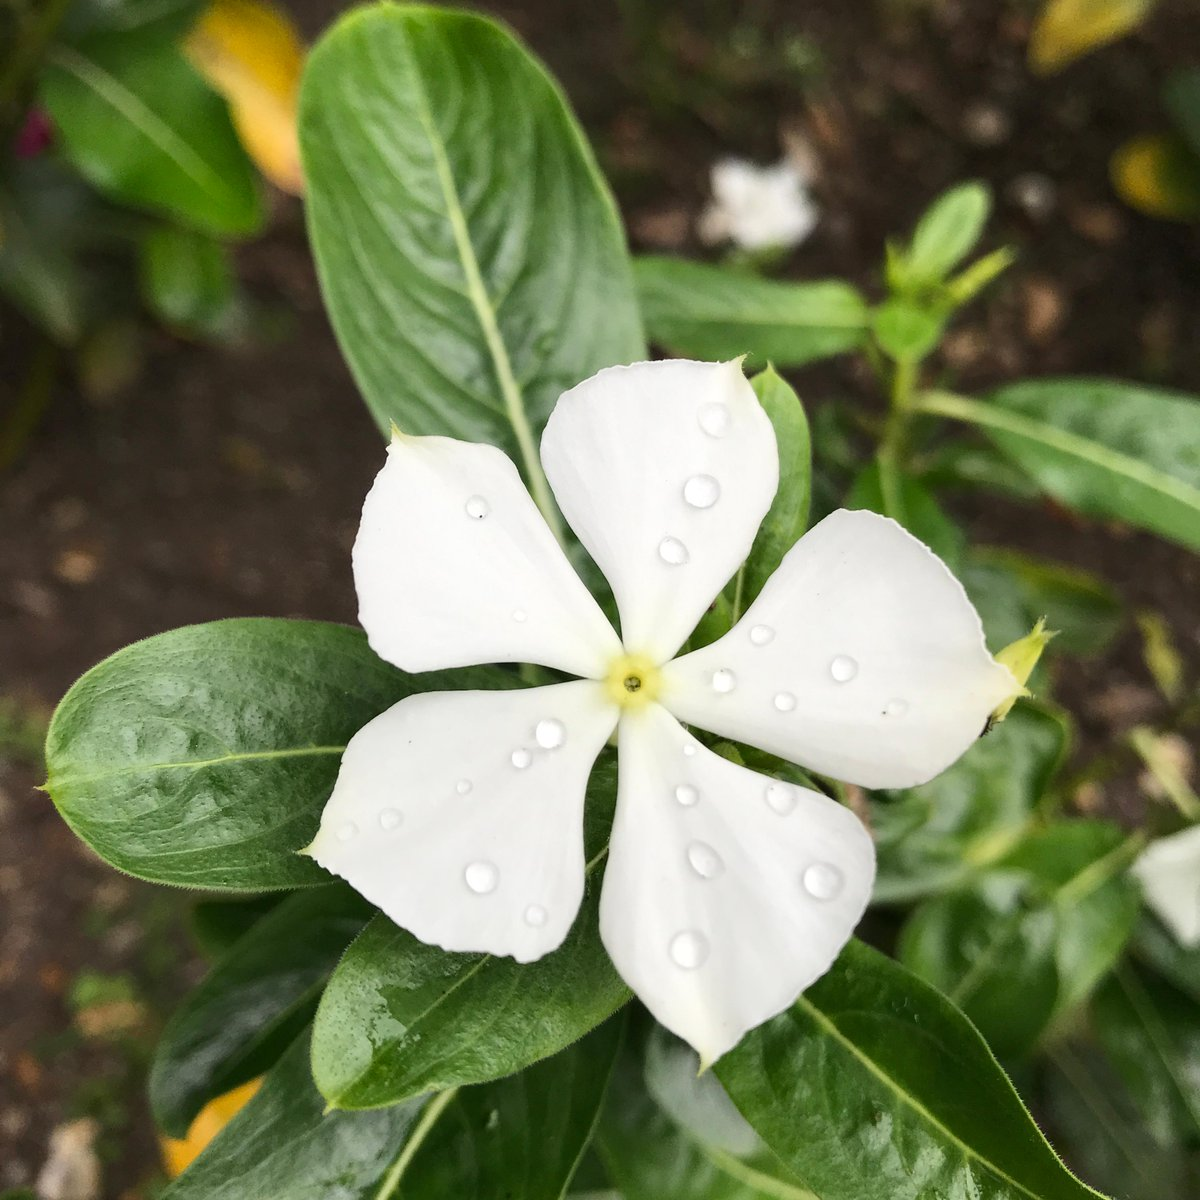 Catharanthus roseus: Madagascar periwinkle. Its compounds of vincristine and vinblastine have have been used in the treatment of leukaemia and lymphoma. These compounds are now produced artificially. Find it in our Garden of Medicinal Plants. #botanicgarden #medicinalplants